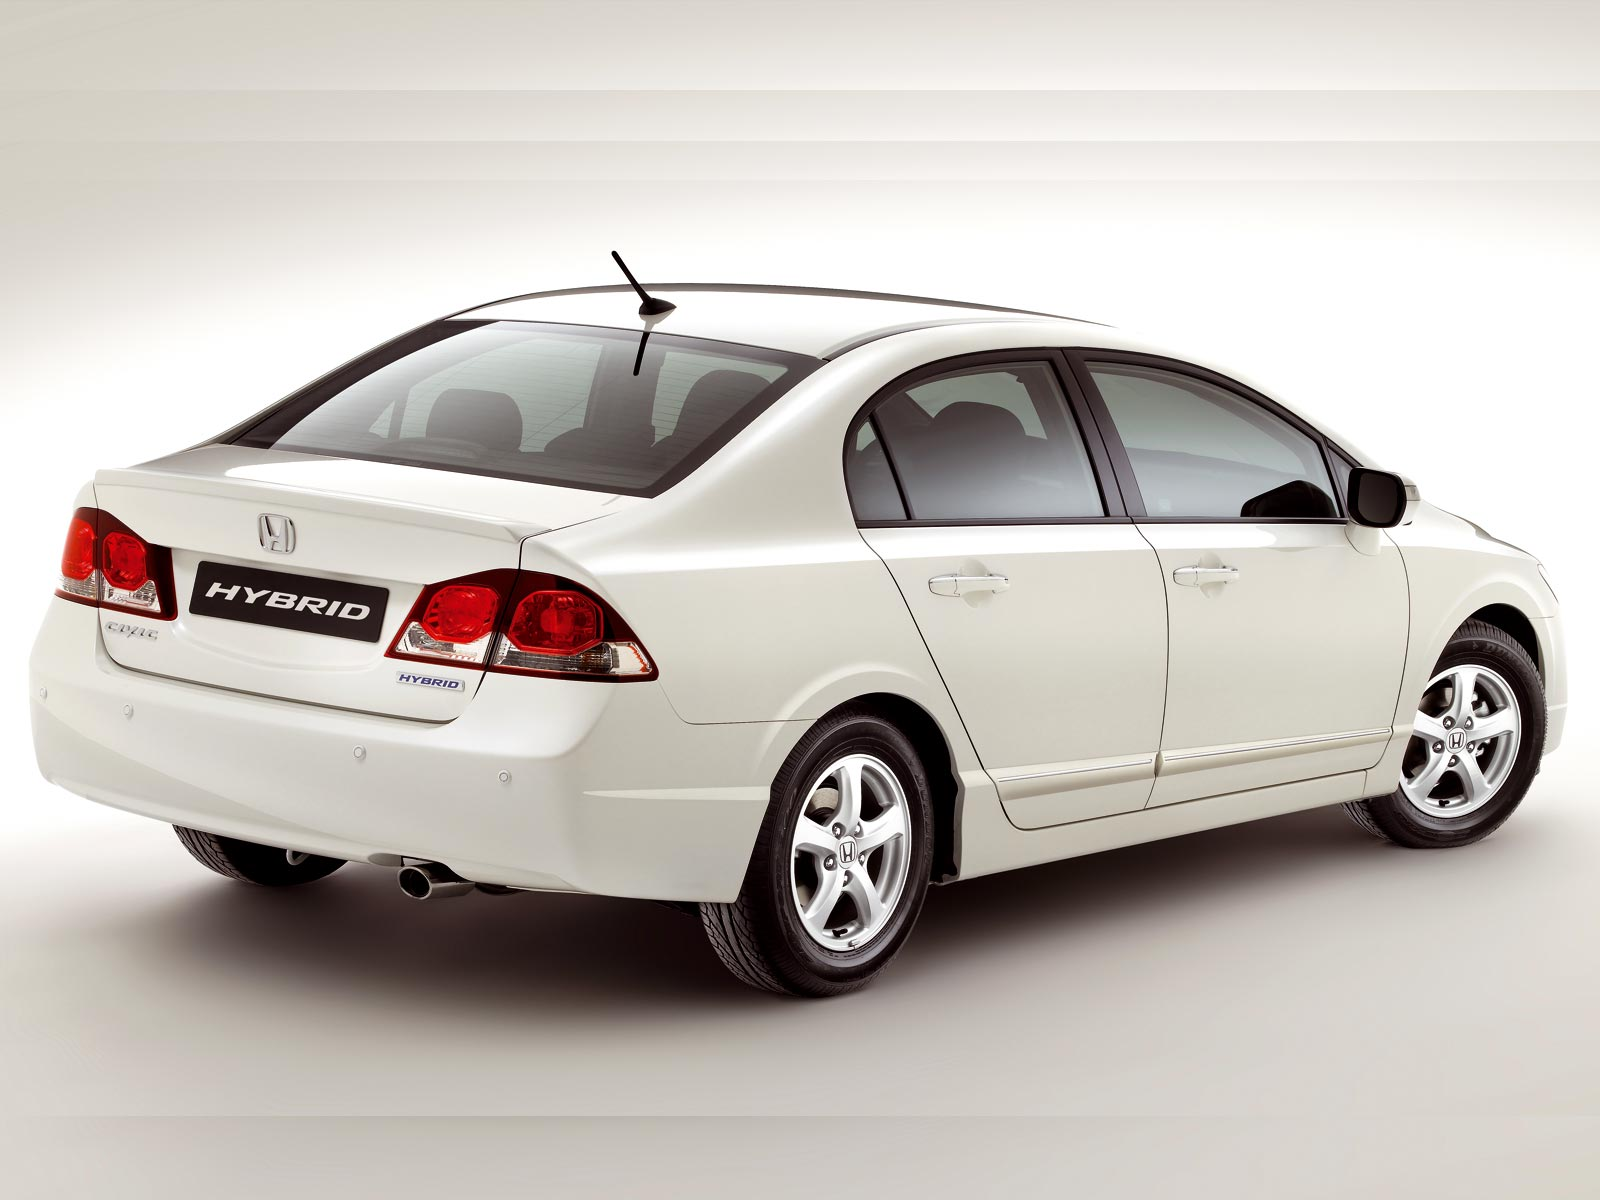 2007 2010 Honda Civic Hybrid Autoguru Katalog At